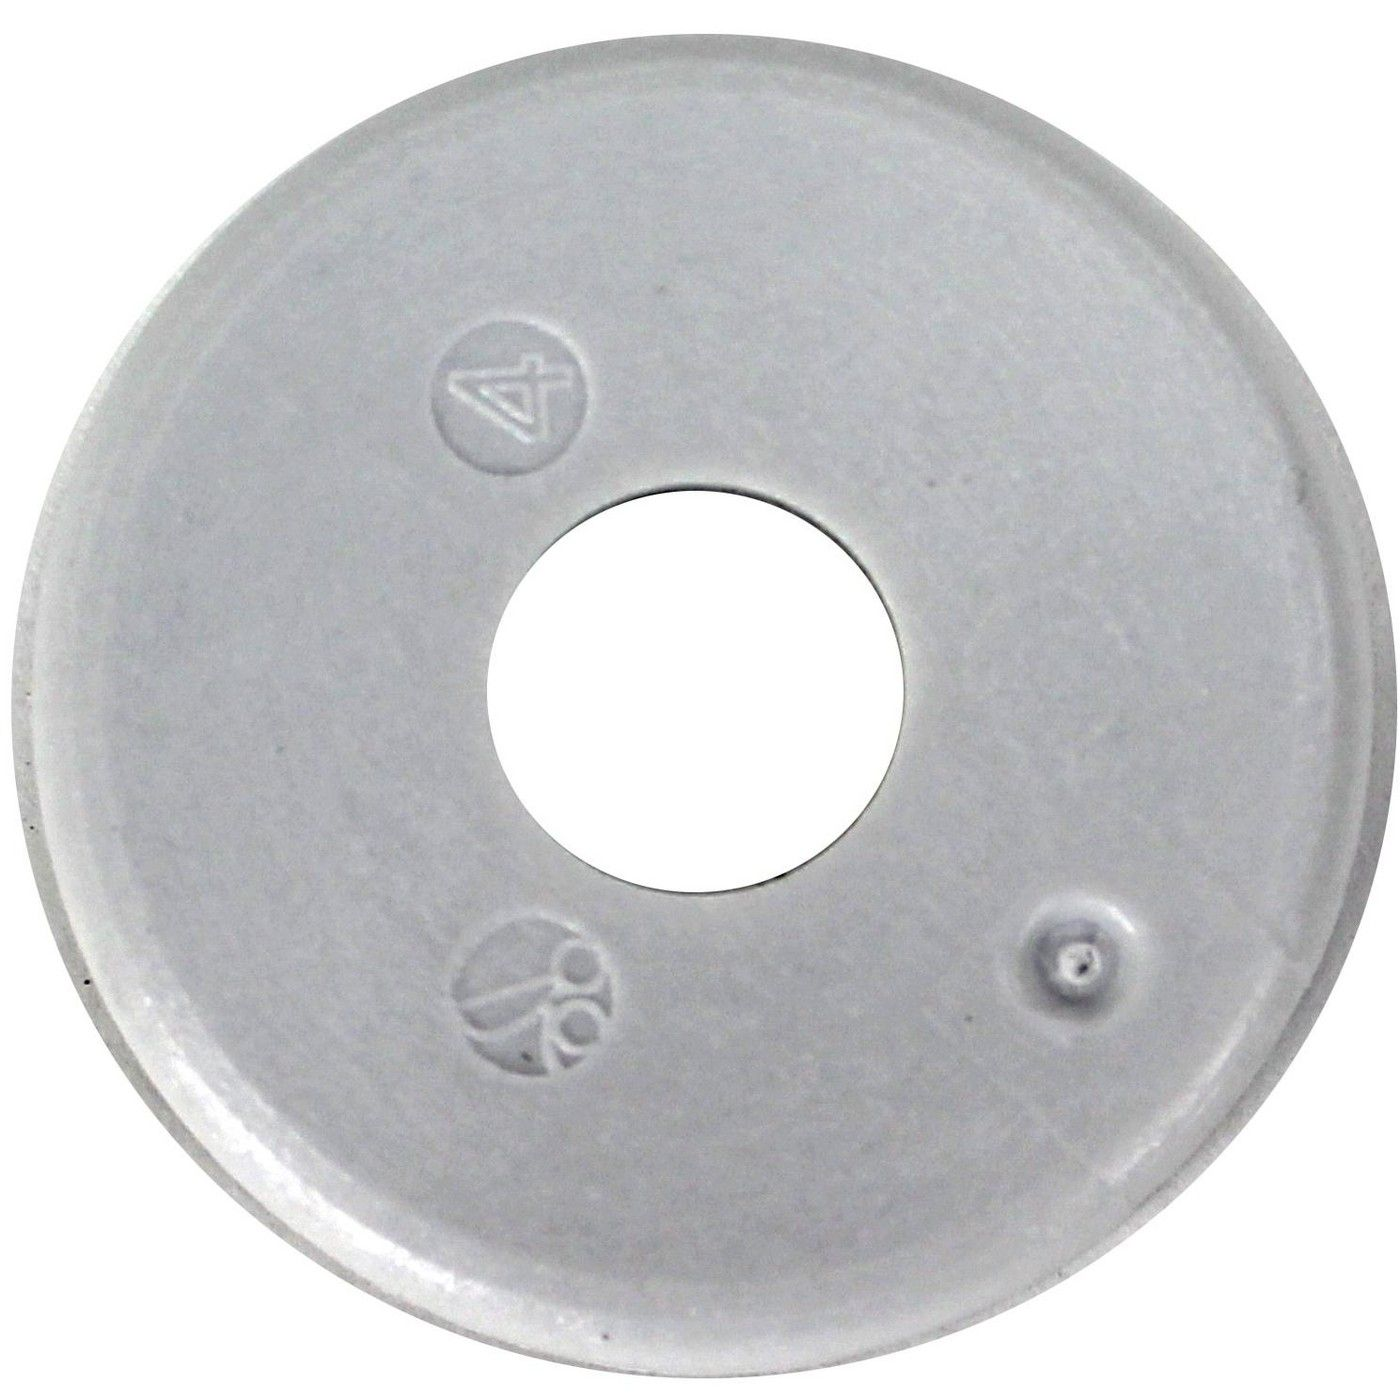 2 Polaris C65 Pool Cleaner 180 280 Washer Replacement Rear Large Axle Wheels Affiliate Cleaner Ad Polaris Pool Pool Cleaning Washer Parts Washer